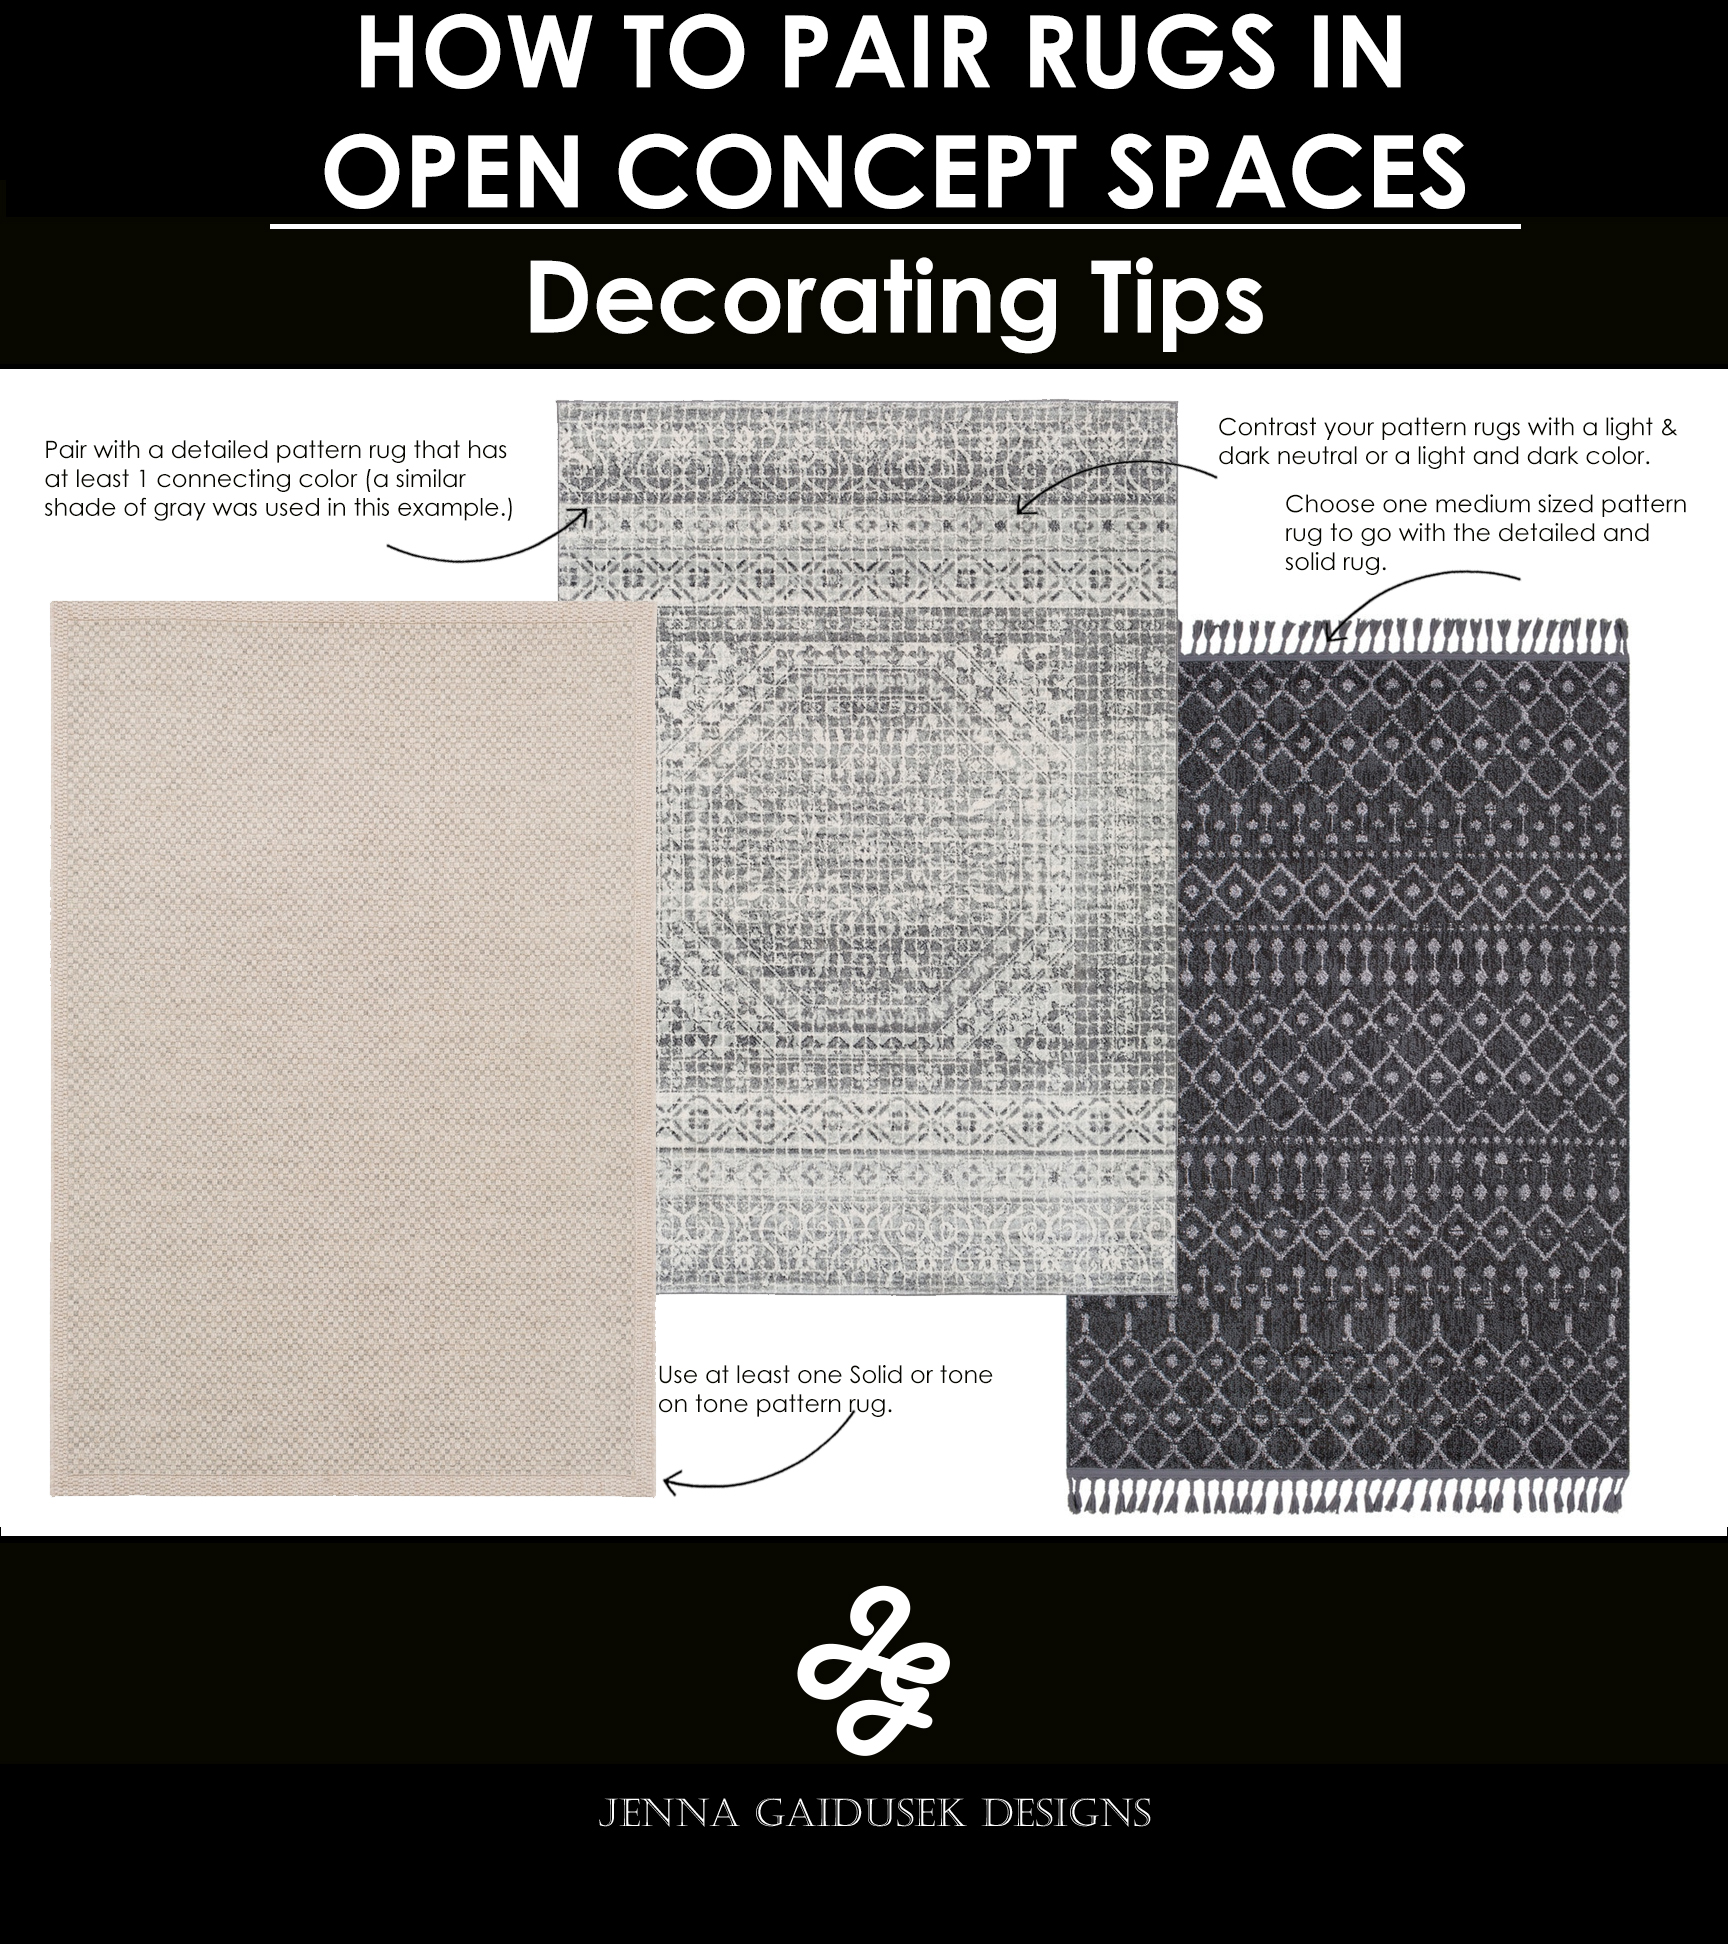 Use at least one Solid or tone on tone pattern rug.  Pair with a detailed pattern rug that has at least 1 connecting color (a similar shade of gray was used in this example.)  Contrast your pattern rugs with a light & dark neutral or a light and dark color.  Choose one medium sized pattern rug to go with the detailed and solid rug.